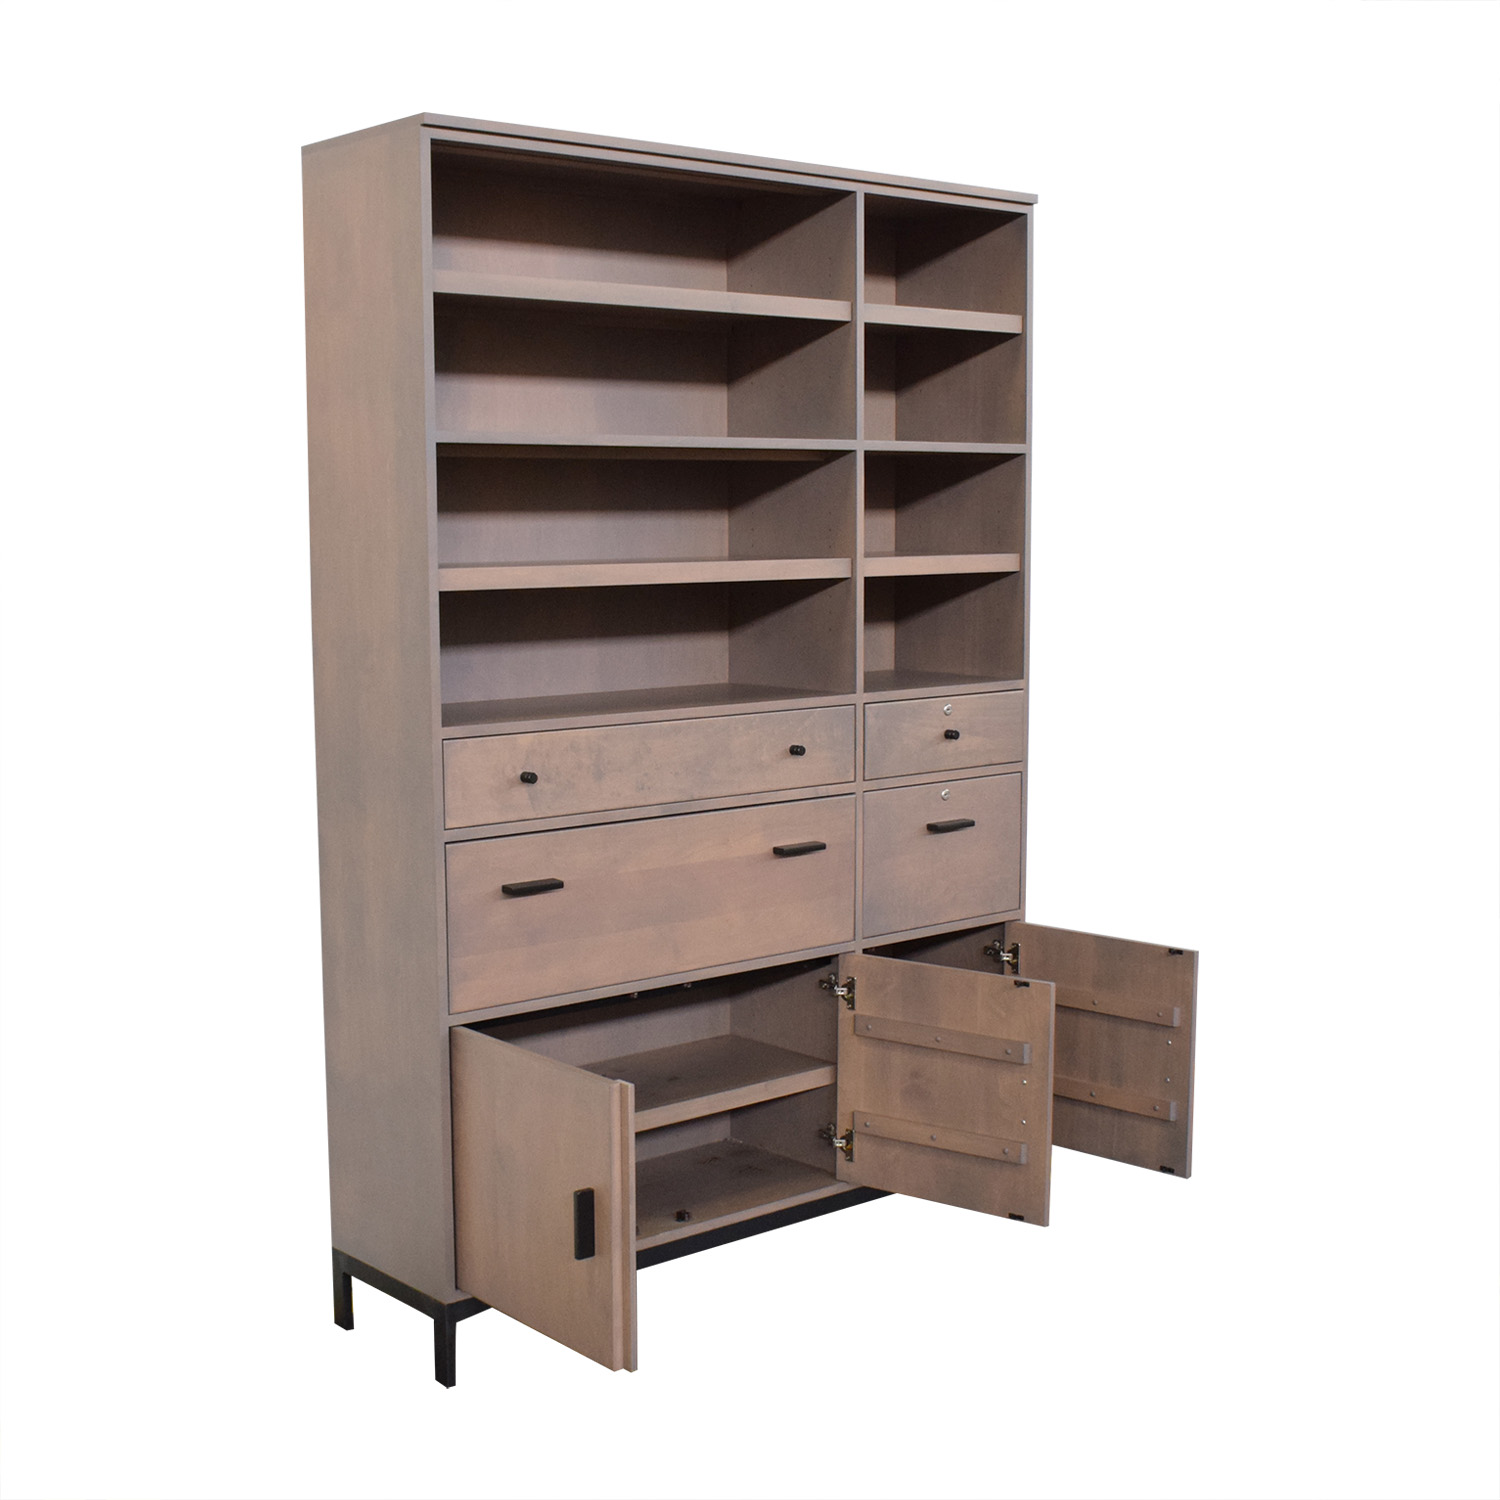 shop Room & Board Storage Cabinet Bookcase Room & Board Storage